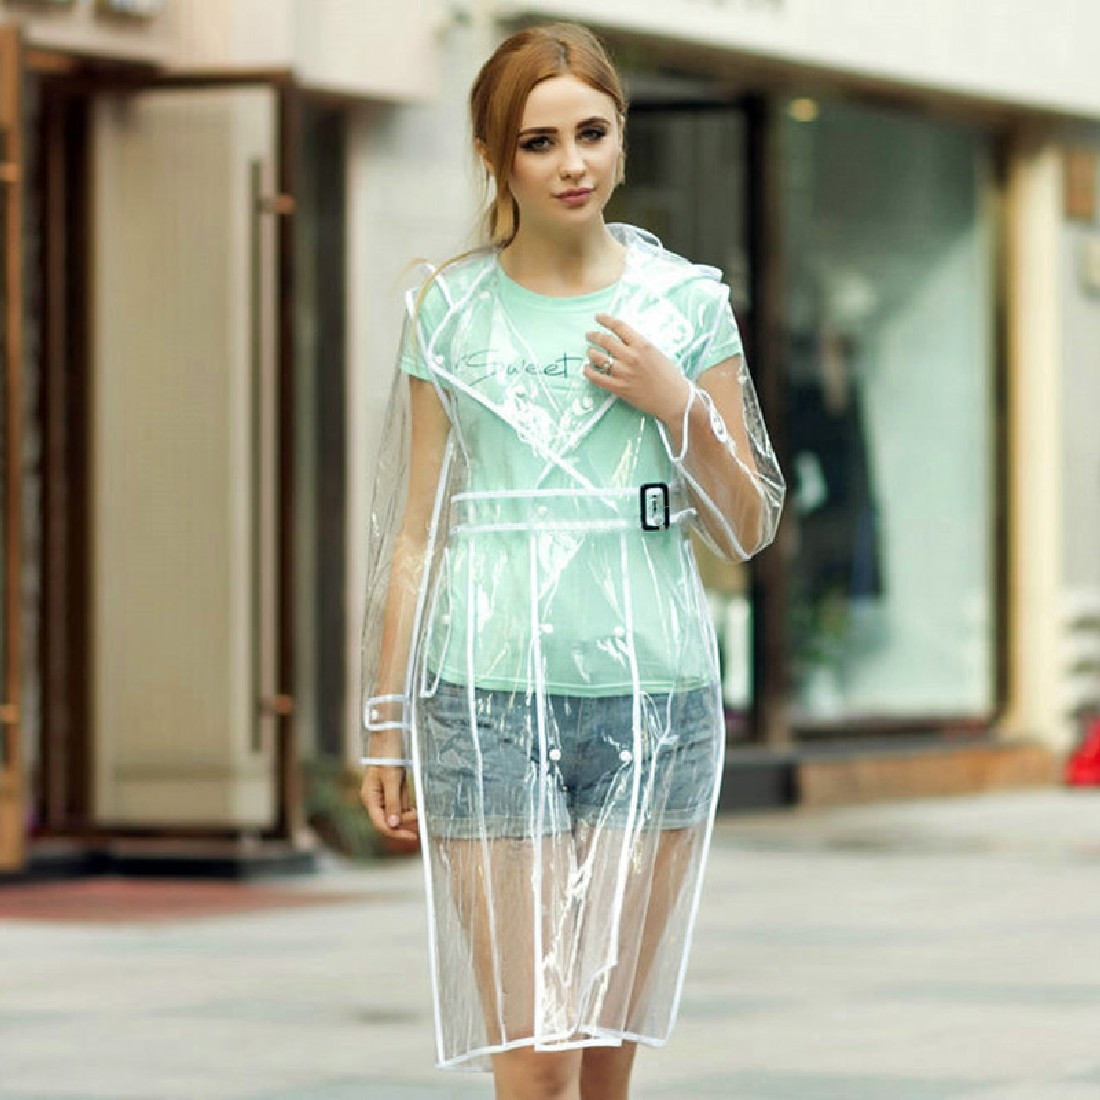 Aliexpress buy good creative transparent raincoat with belt aliexpress buy good creative transparent raincoat with belt long rain coat women jacket waterproof windbreaker hooded poncho outdoors rainwear from ccuart Image collections